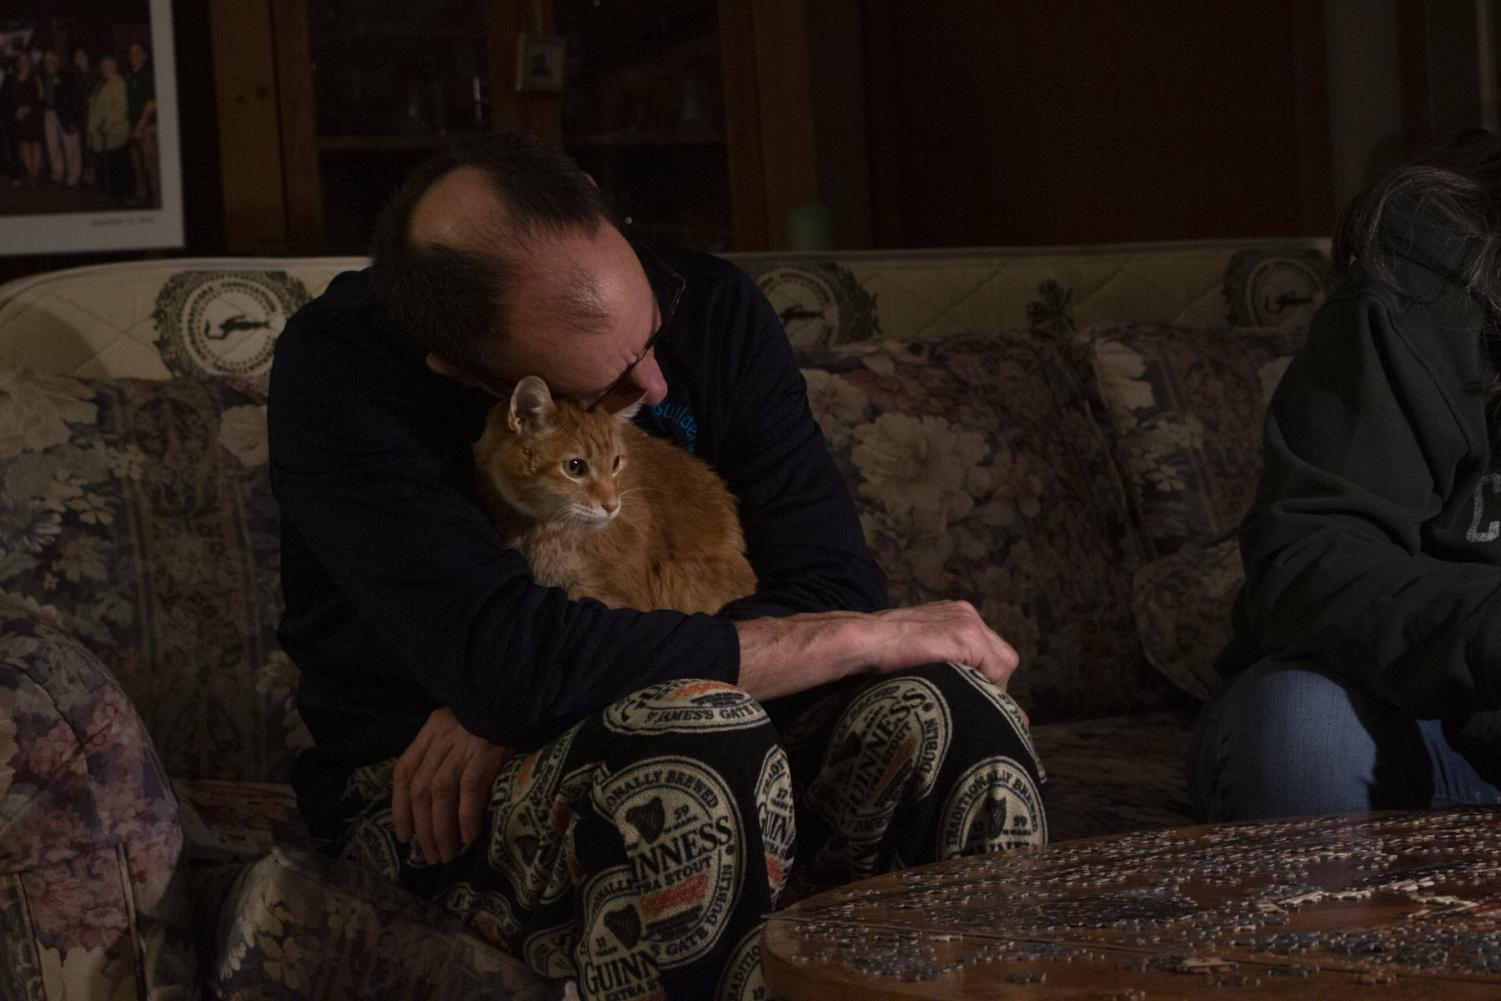 Mitch Schrage takes a break from putting a puzzle together with Terese Brunner to hug their cat Sully on April 6, 2020 at their home in New Holstein, Wis. Schrage finds comfort in the company their pets provide during these stressful times.